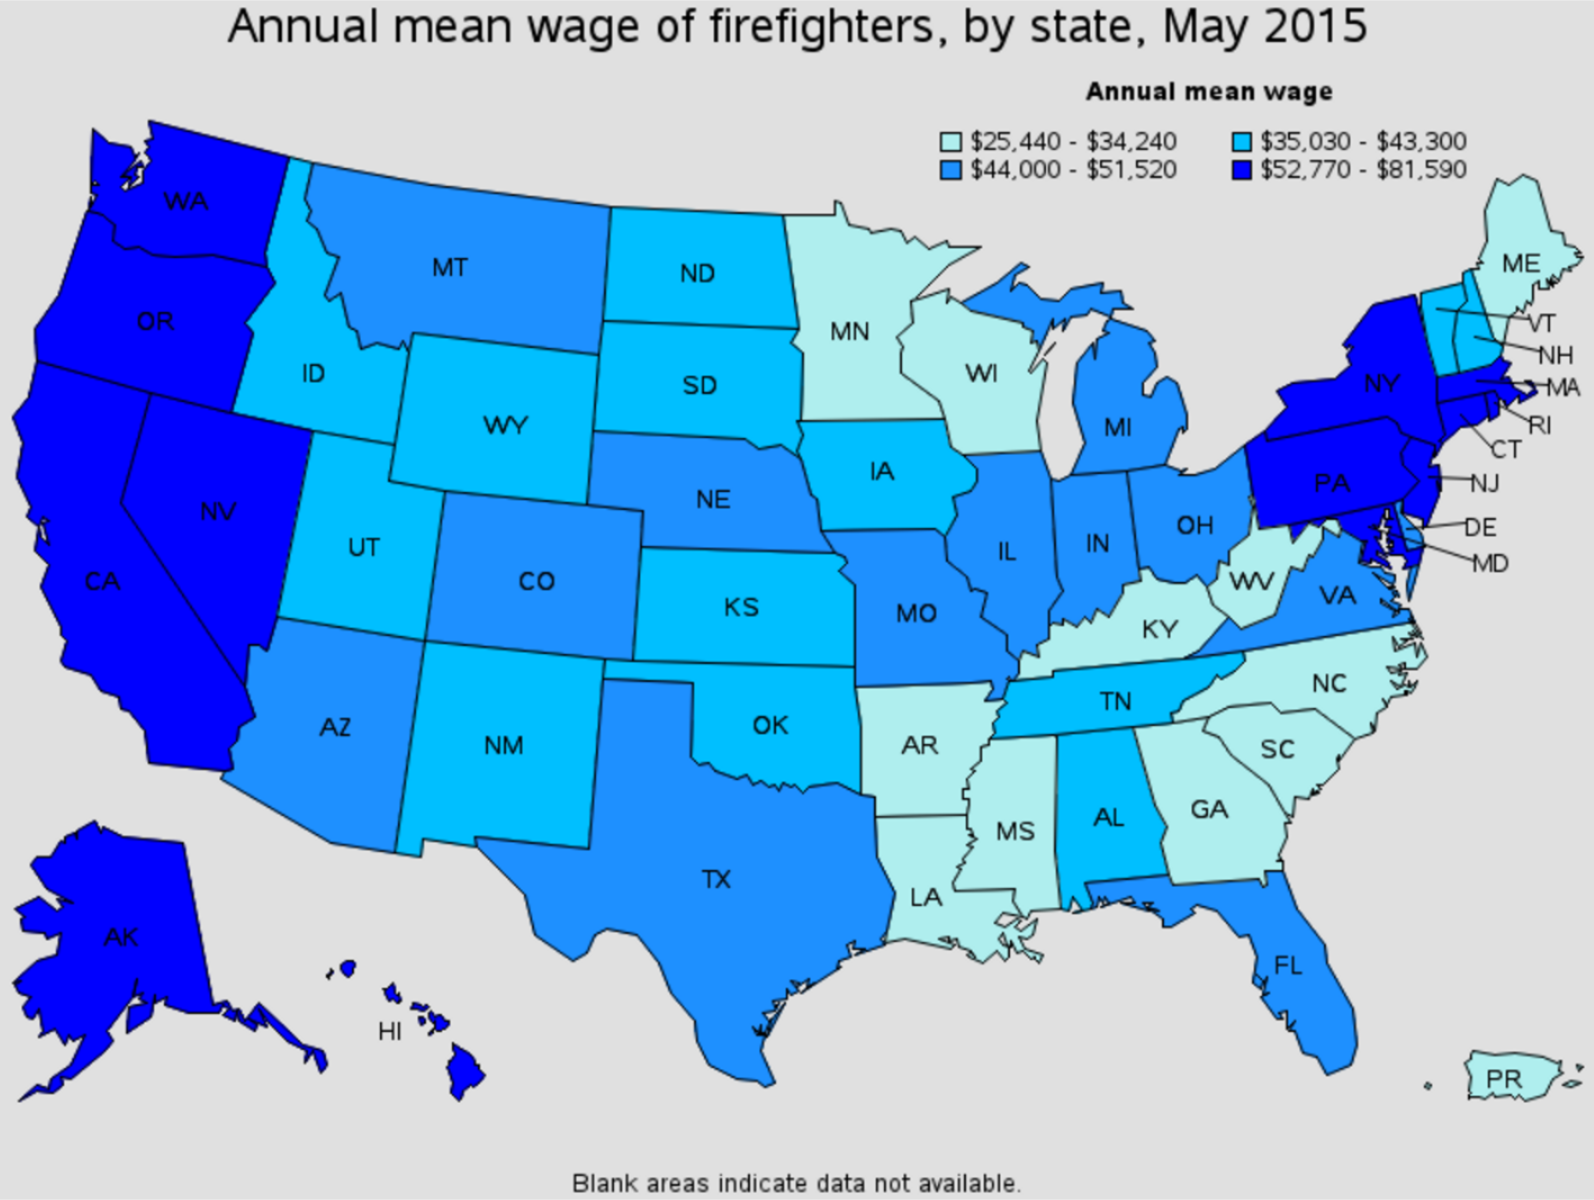 firefighter average salary by state Winfield West Virginia